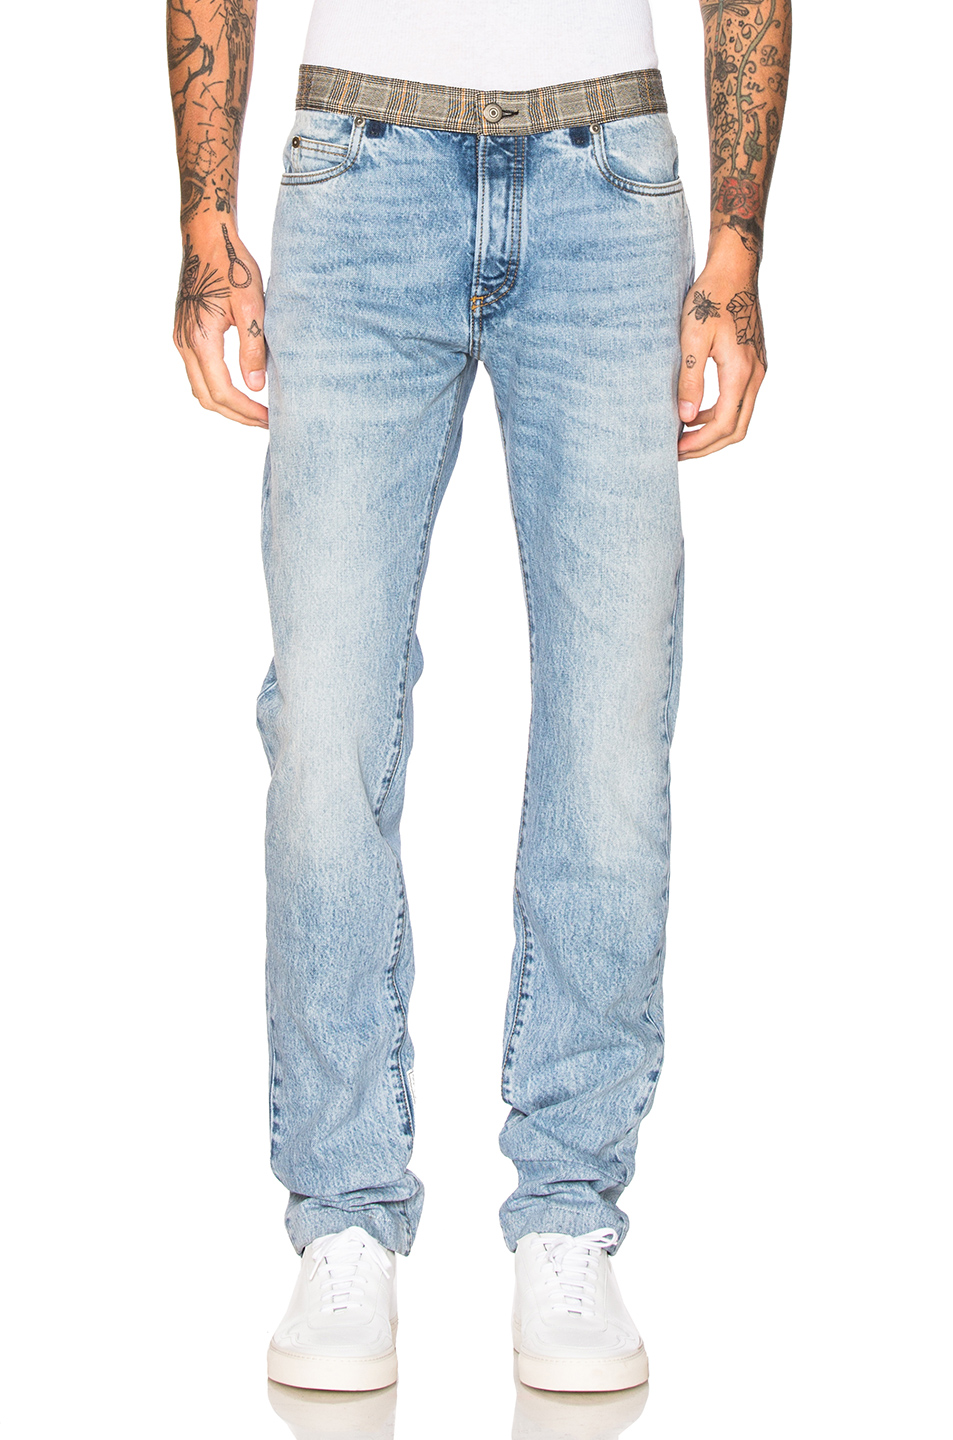 Maison Margiela Jeans in Blue